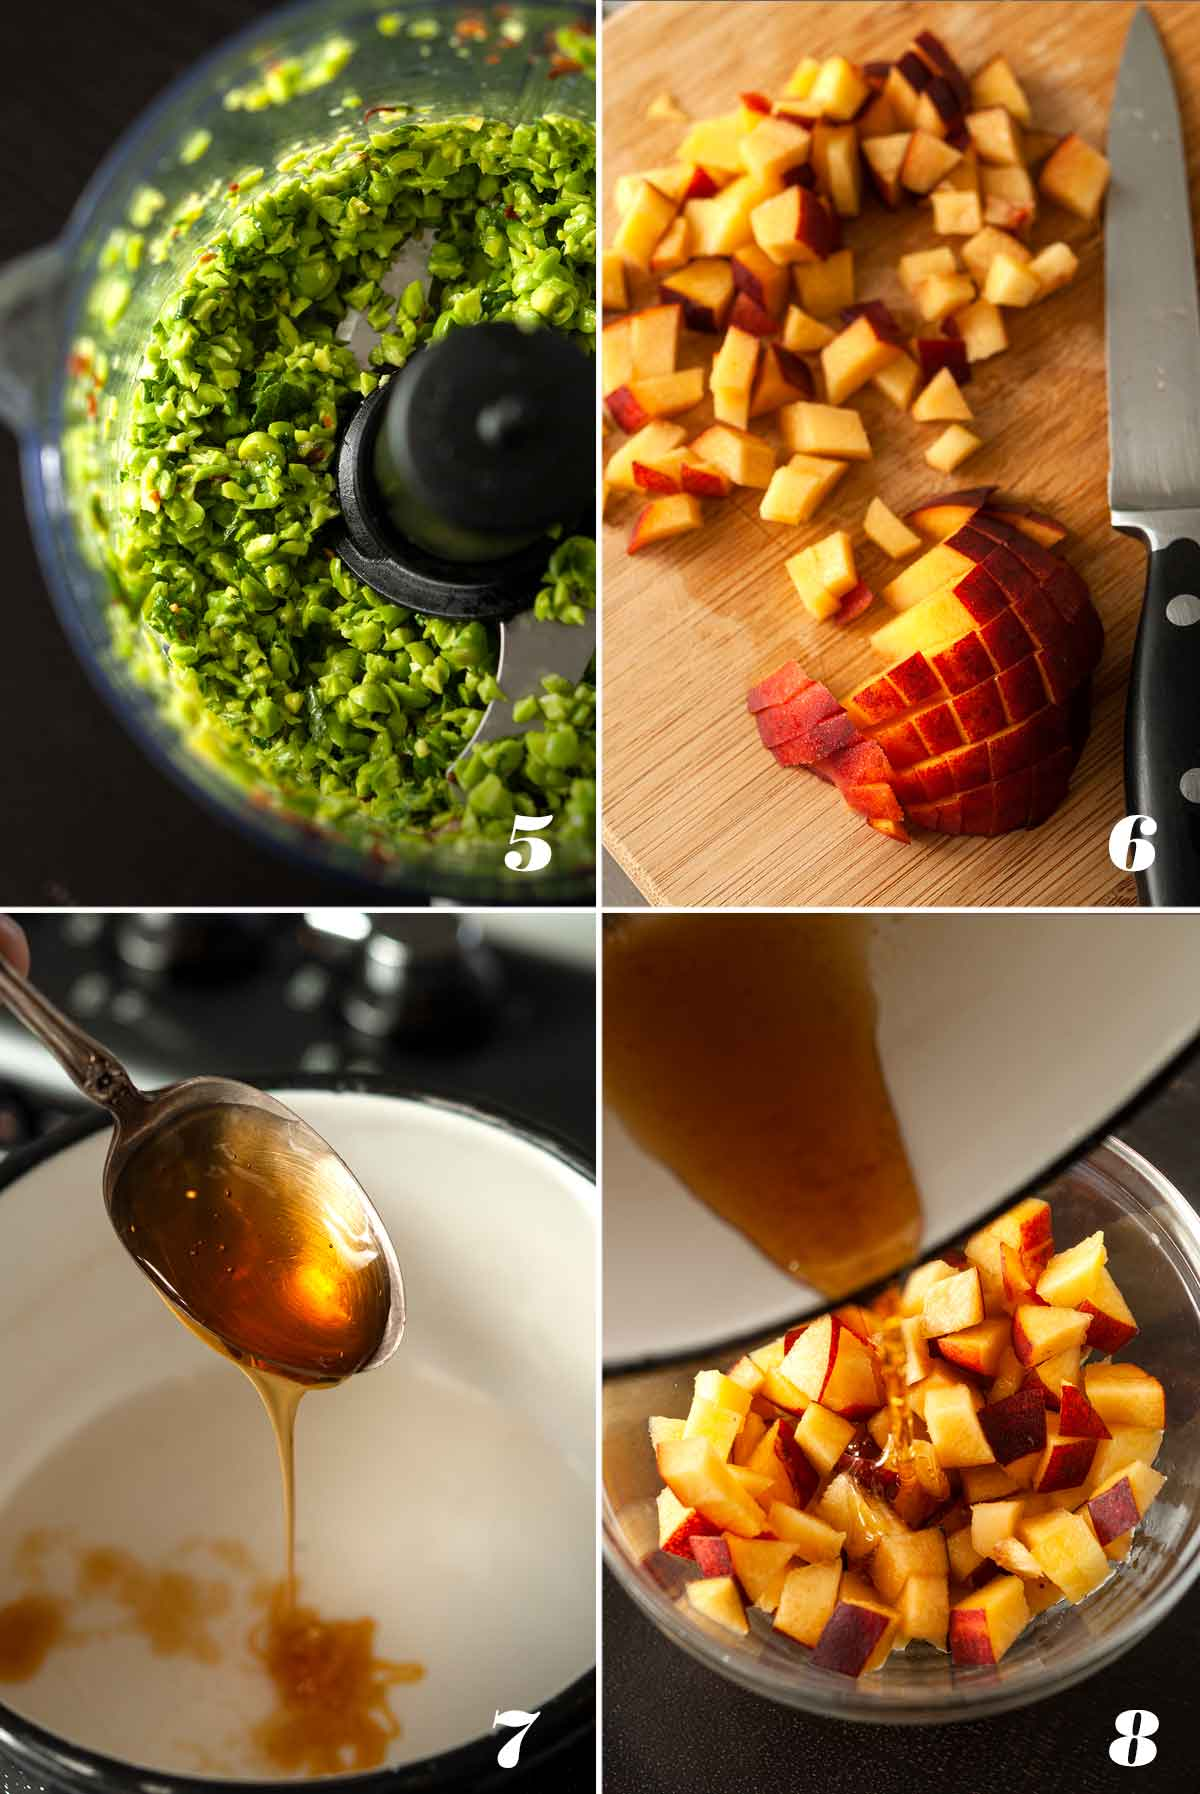 A collage of 4 images showing how to create toppings for crostini.